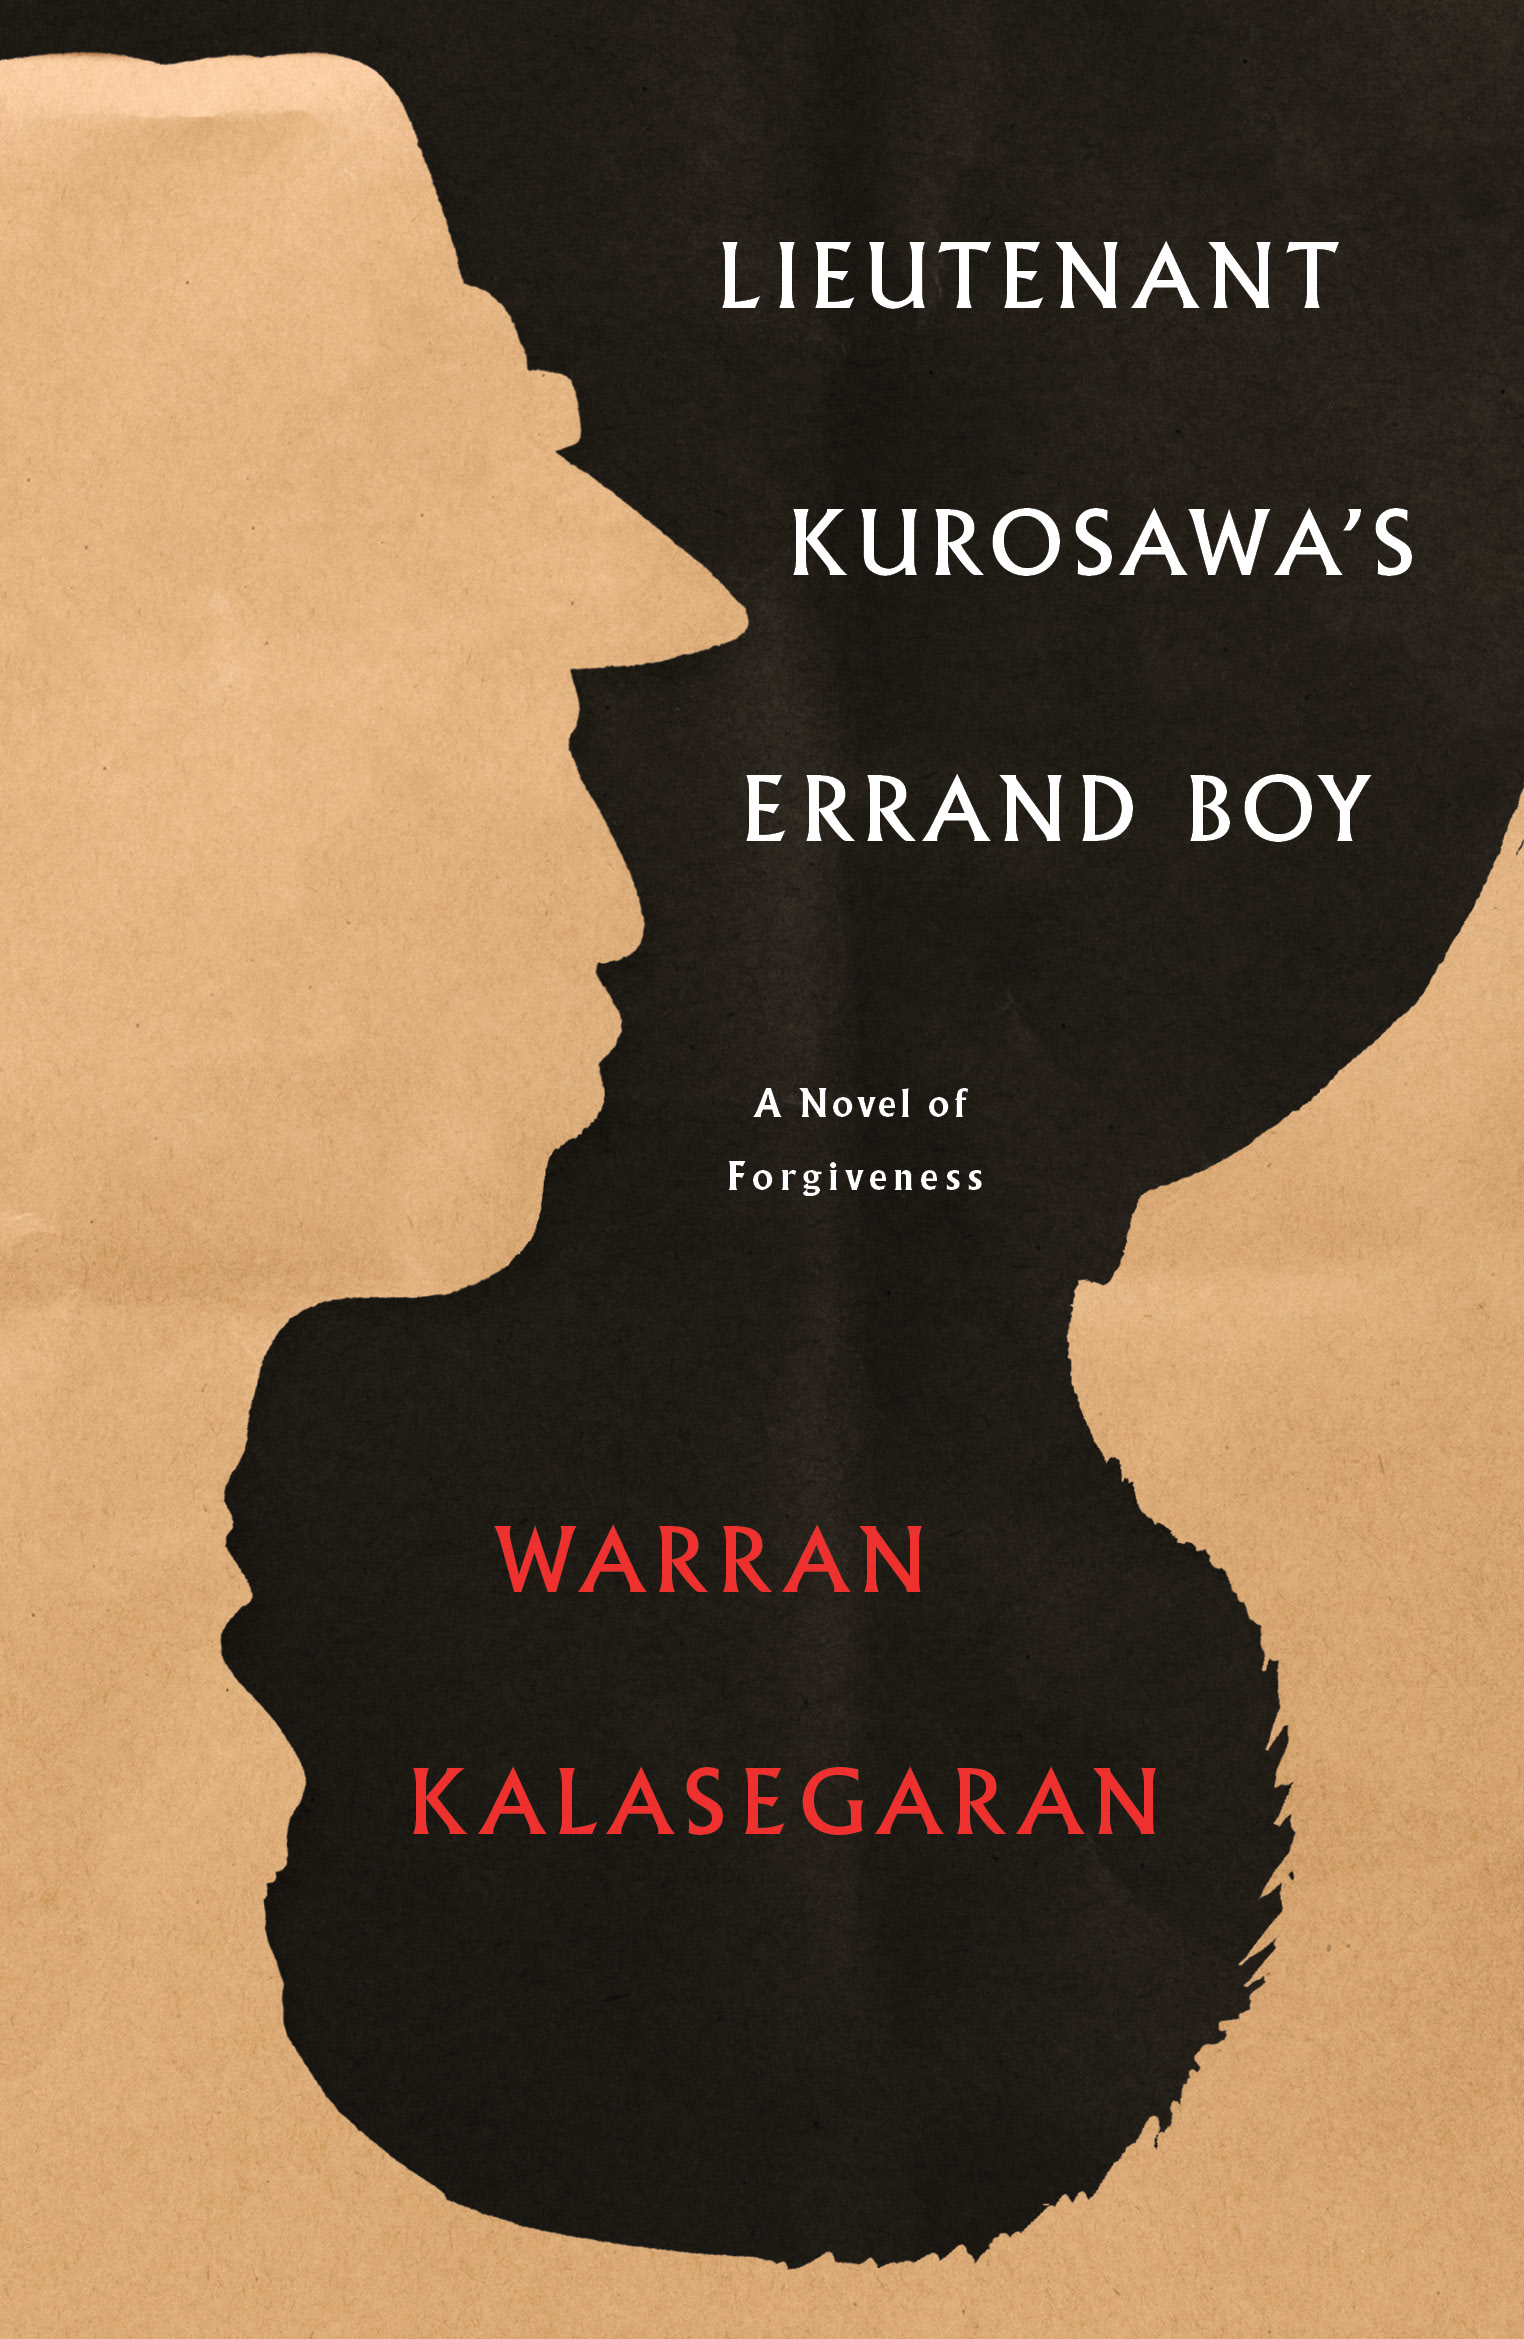 - LIEUTENANT KUROSAWA'S ERRAND BOYWarran KalasegaranDuring the Japanese Occupation of Singapore, an eight-year old boy, separated from his father, is forced by his new military police boss, Lieutenant Kurosawa Takeshi of the Kempeitai, to mimic his cruelties to his hapless captives.When the unbelievable happens — Emperor Hirohito's 1945 radio broadcast of Japan's surrender — how does the Lieutenant, the former striding victor now vanquished, rebuild his shattered life and seek forgiveness from the boy he brutalised?£10Historical fiction978-1-91-209858-3July 2018GET THE BOOK HERE